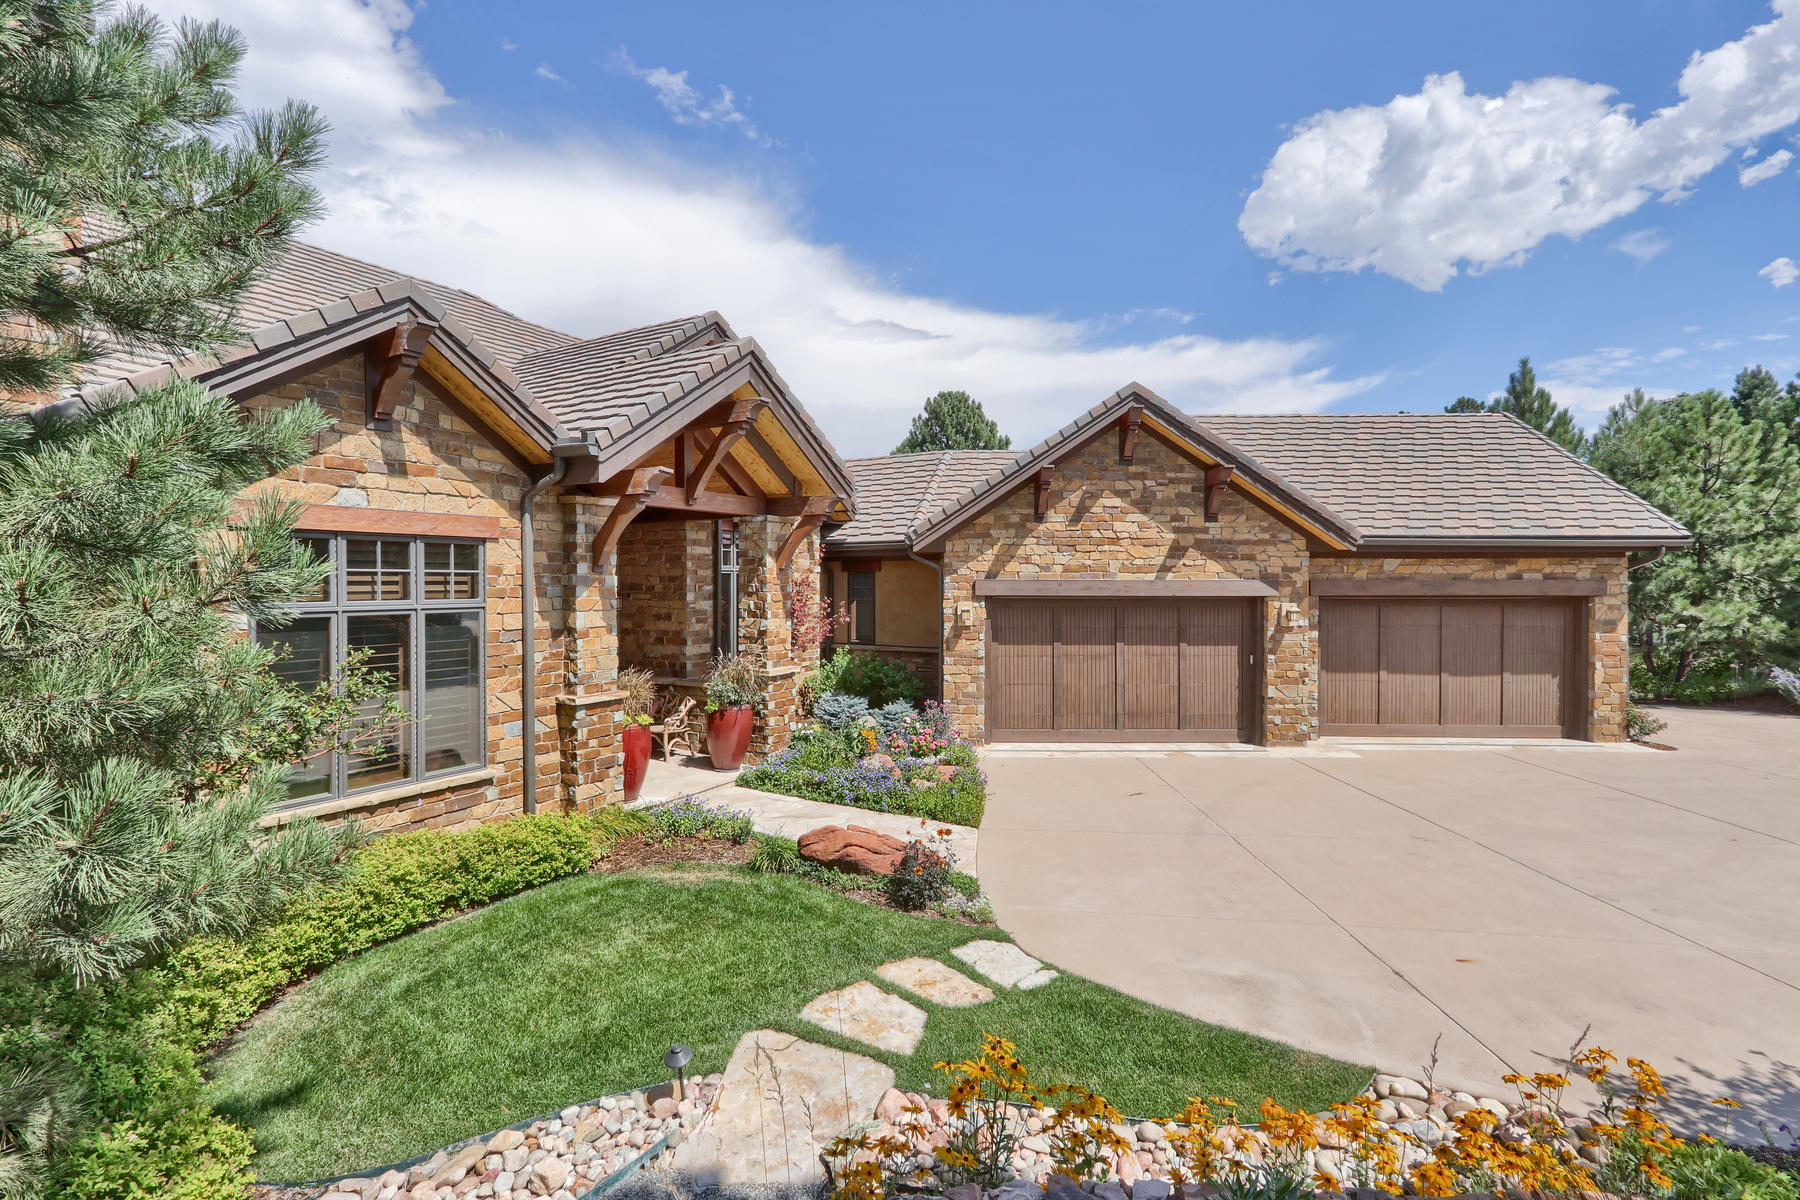 Single Family Homes for Sale at 1105 Northwood Ln Castle Rock, Colorado 80108 United States